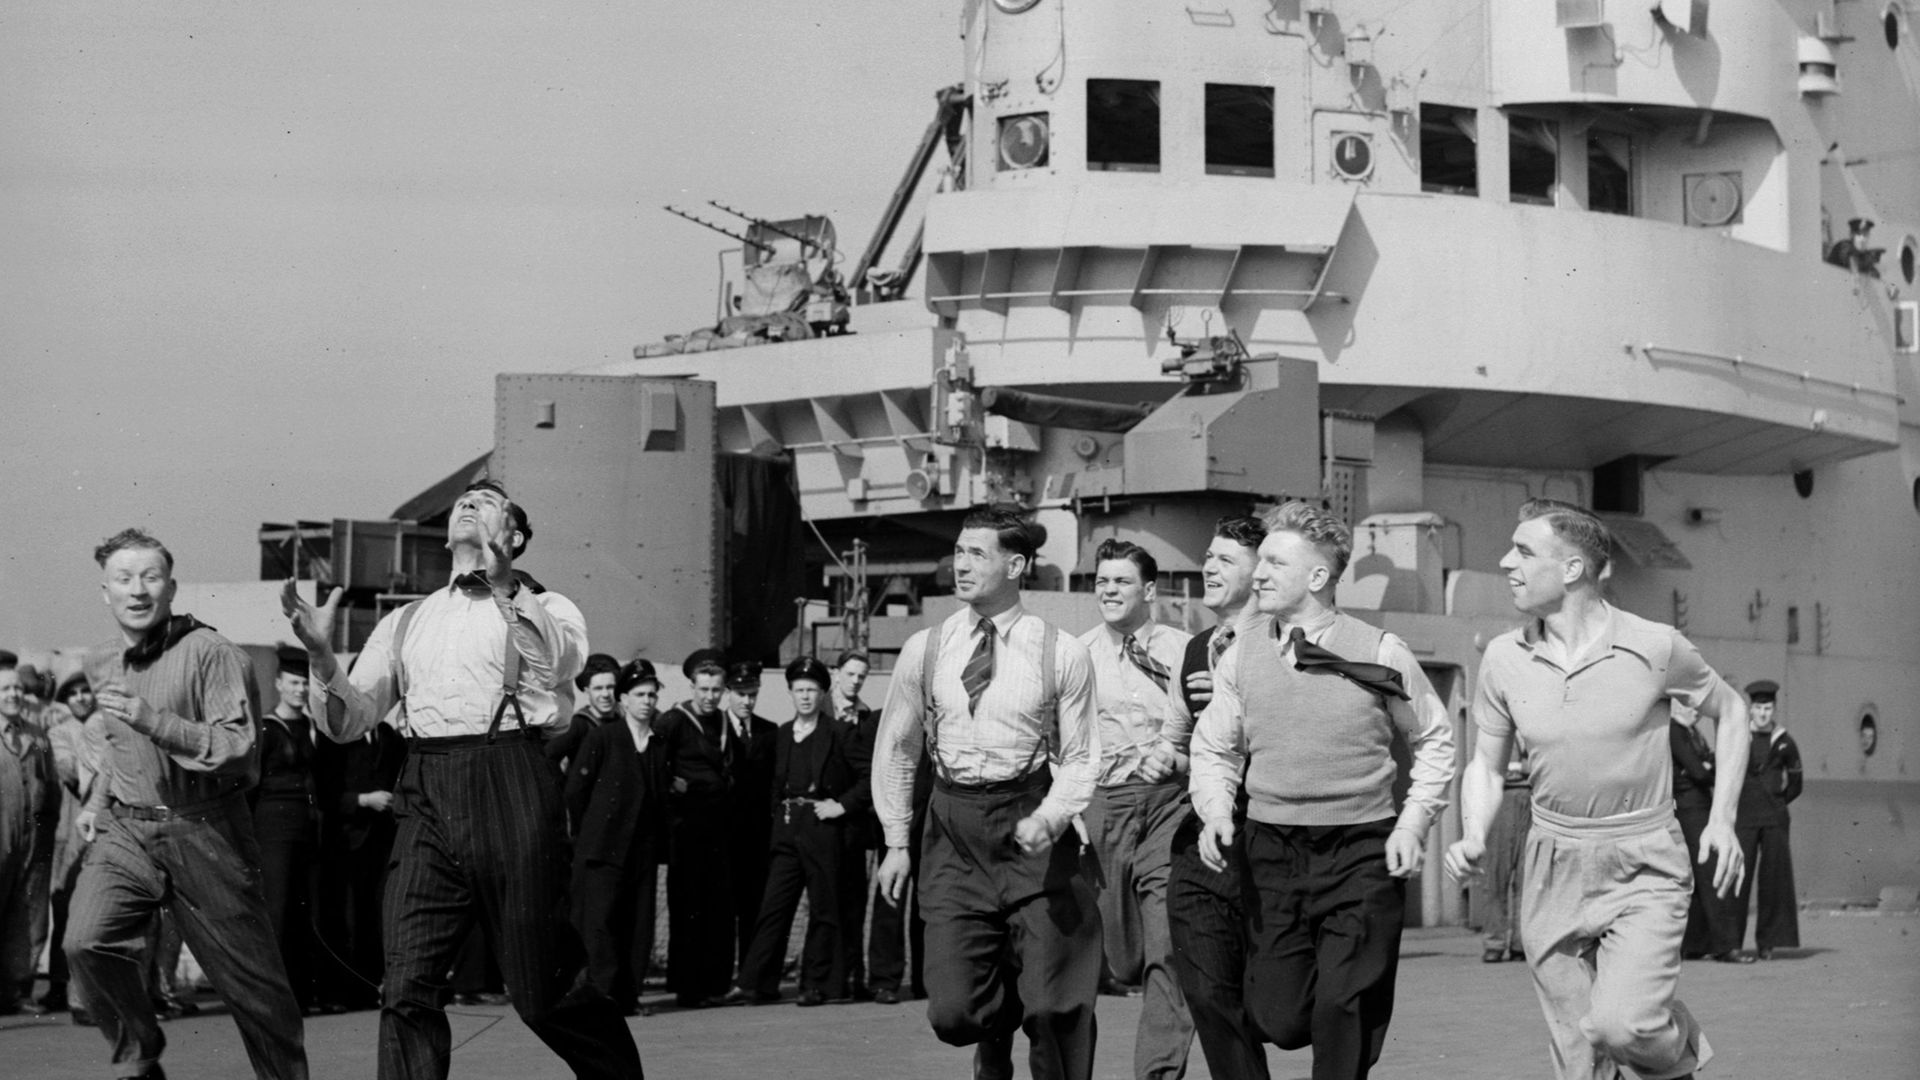 The British Lions rugby league team toss a ball around on the deck of the aircraft carrier HMS Indomitable, bound for Australia - Credit: Getty Images